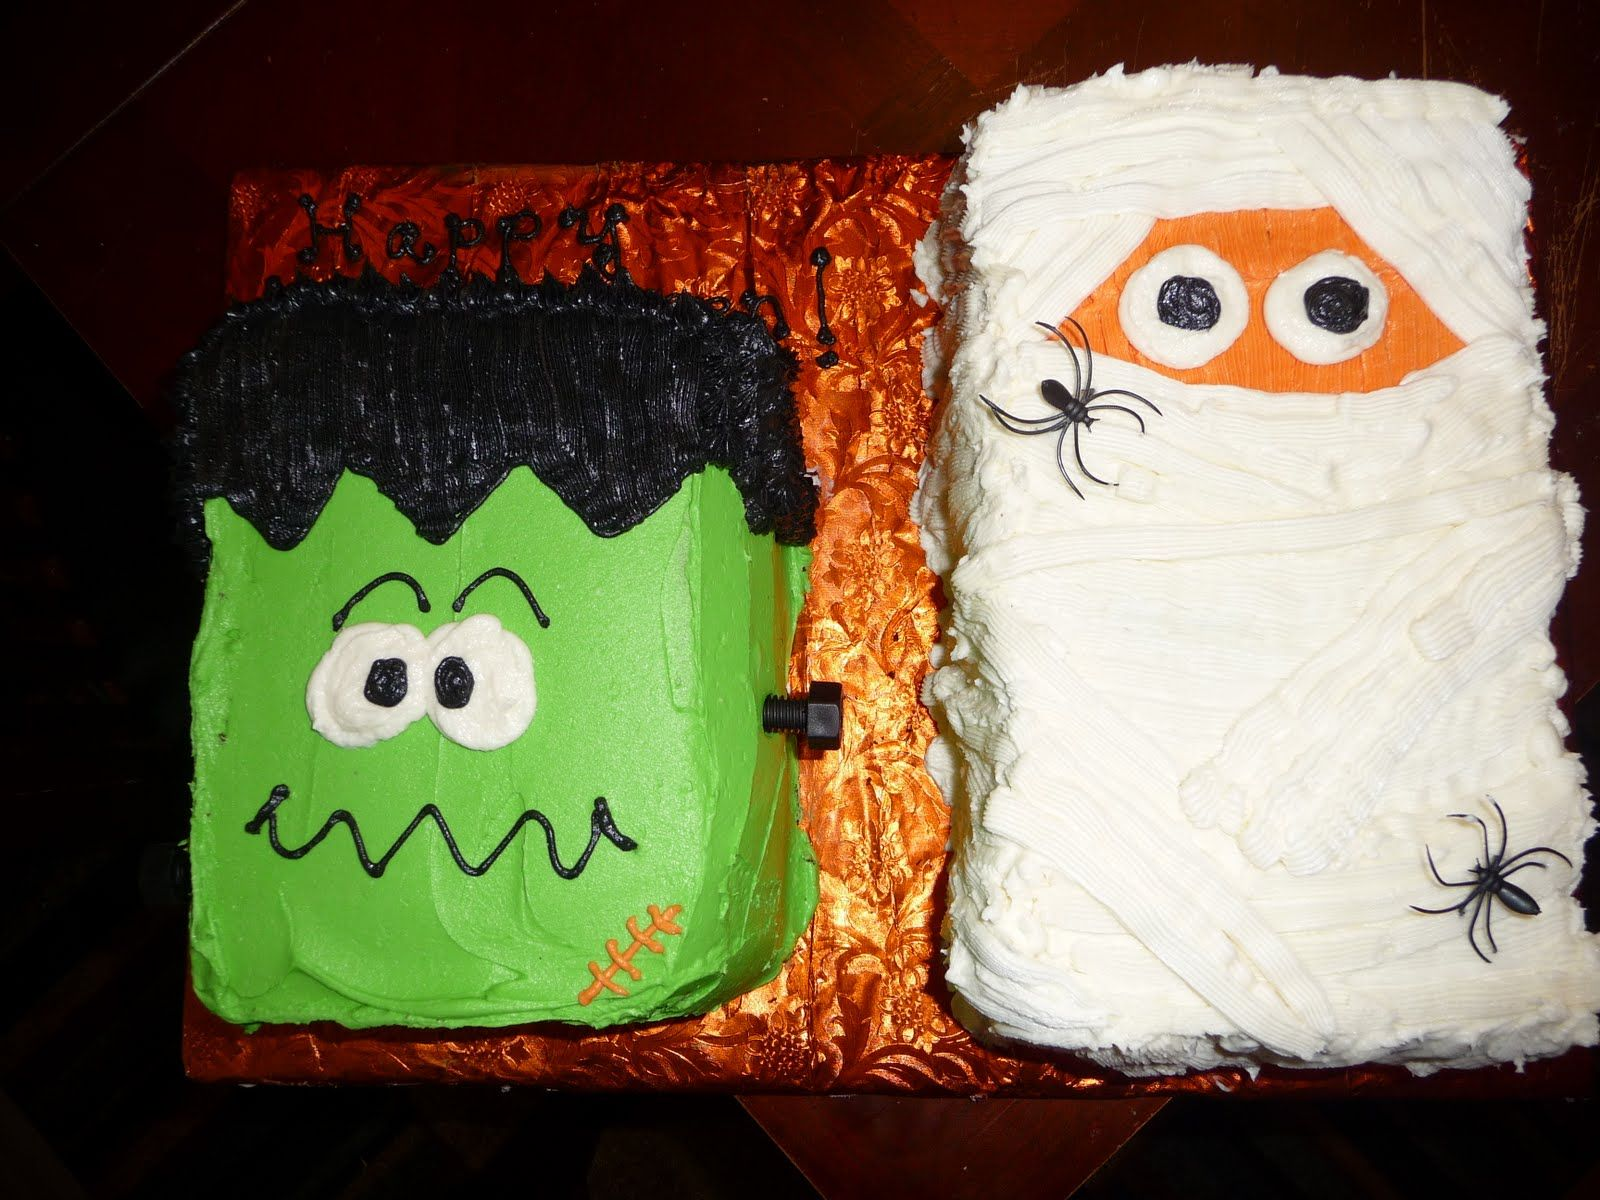 easy halloween cake ideas made these super easy halloween cakes yesterday for a halloween party - Easy To Make Halloween Cakes